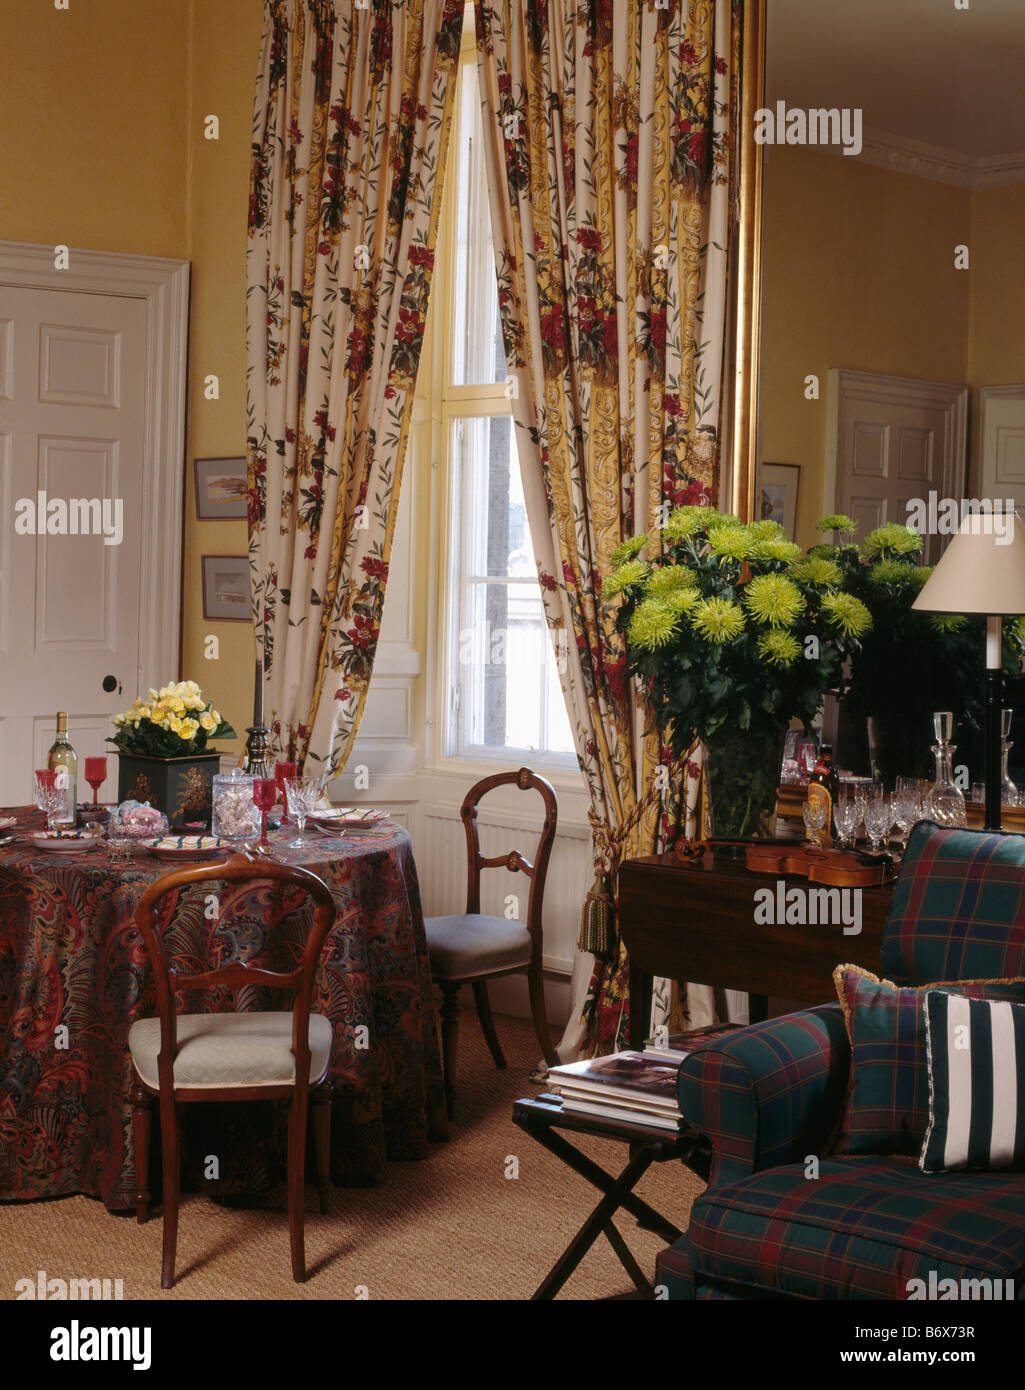 Red Cream Patterned Curtains In Dining Room With Lime Green Chrysanthemums Vase On Table Front Of Mirror